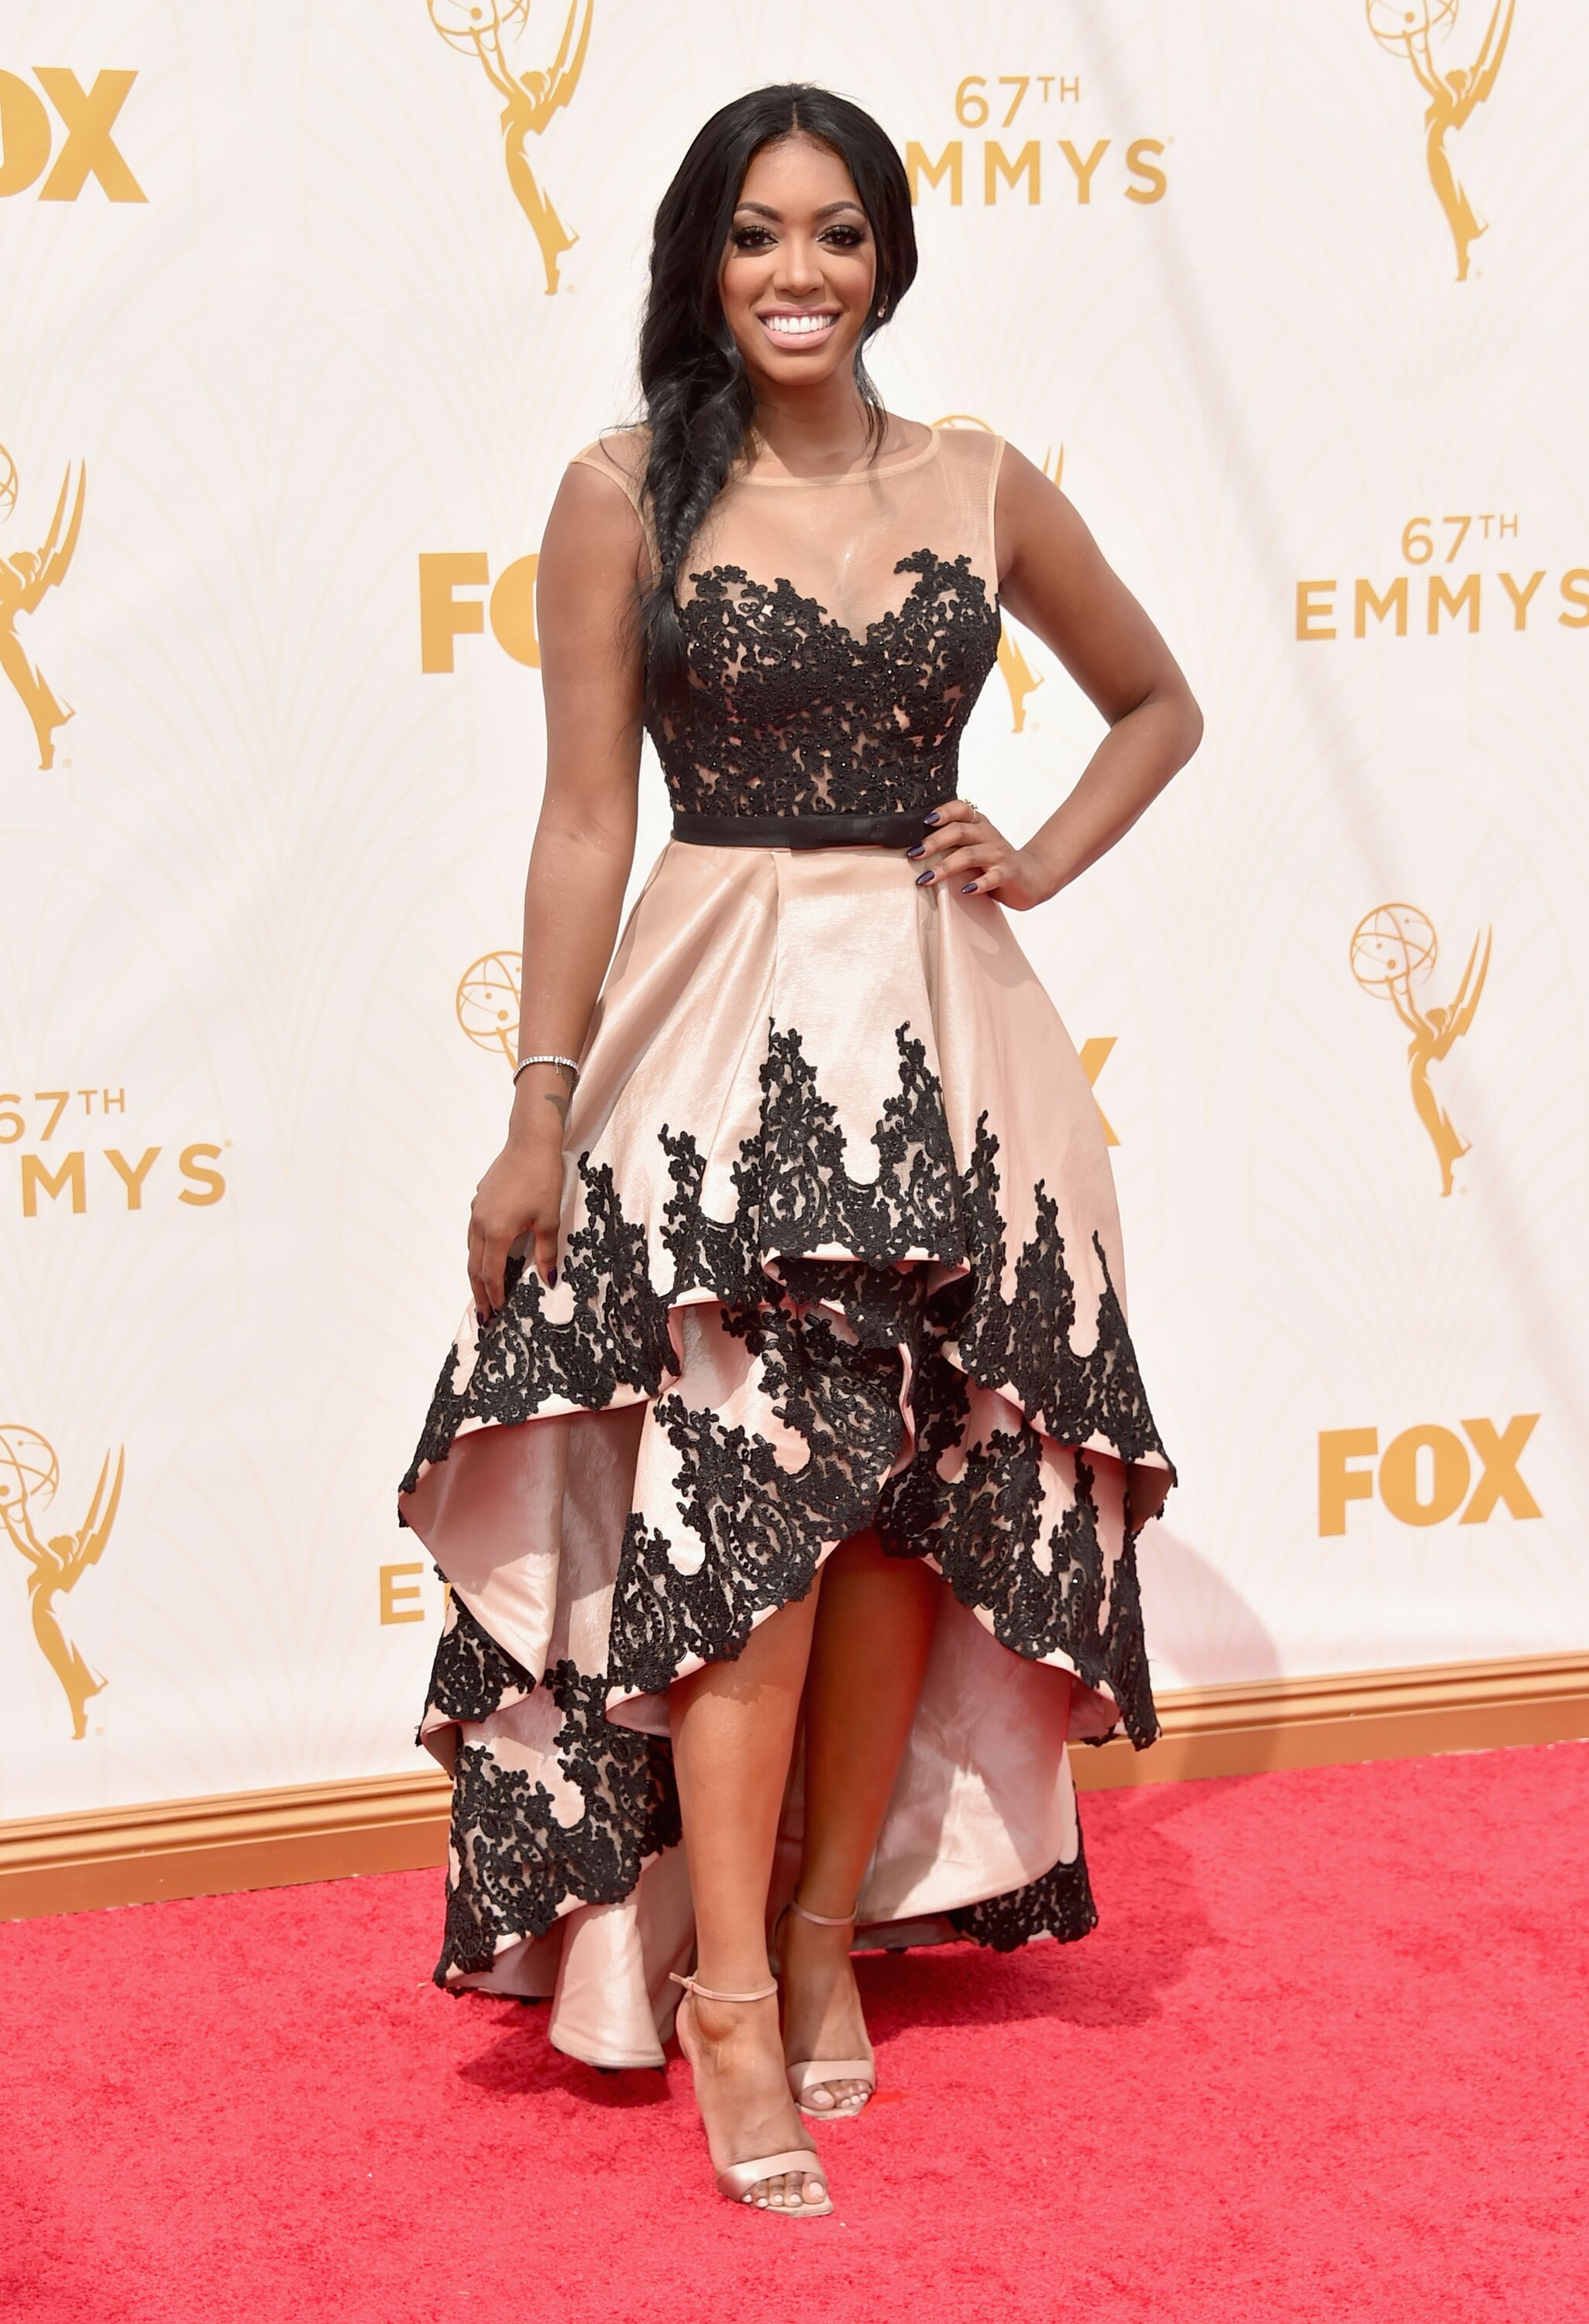 Reality star Porsha Williams at the 67th Emmy Awards/ Source: Getty Images